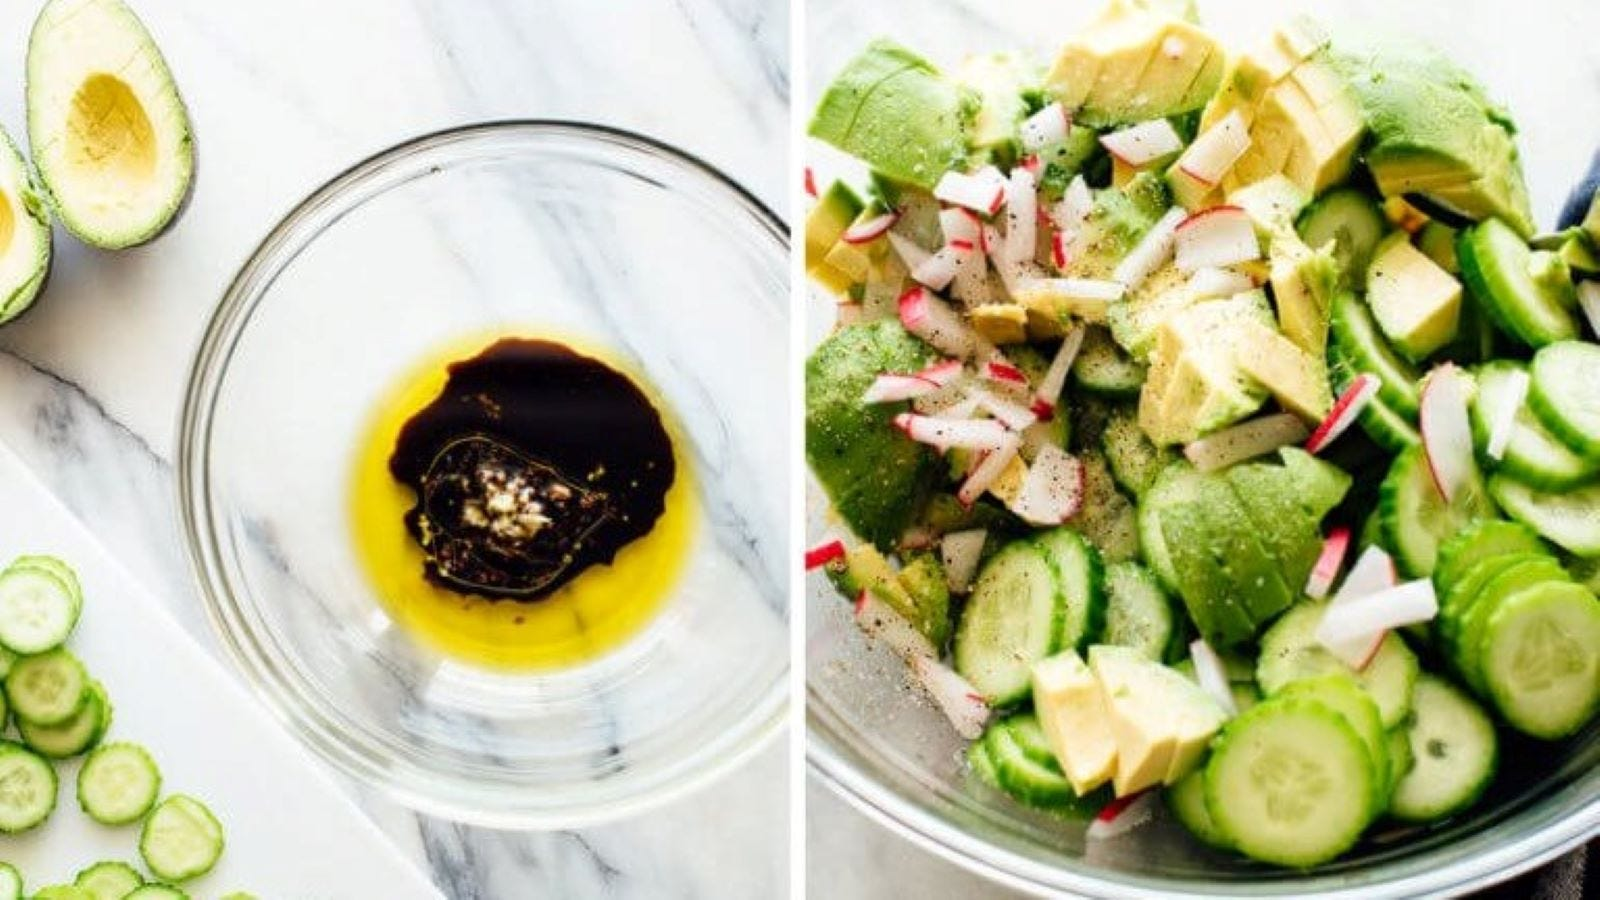 Olive oil, balsamic vinegar and garlic in a mixing bowl, and a finished cucumber salad.